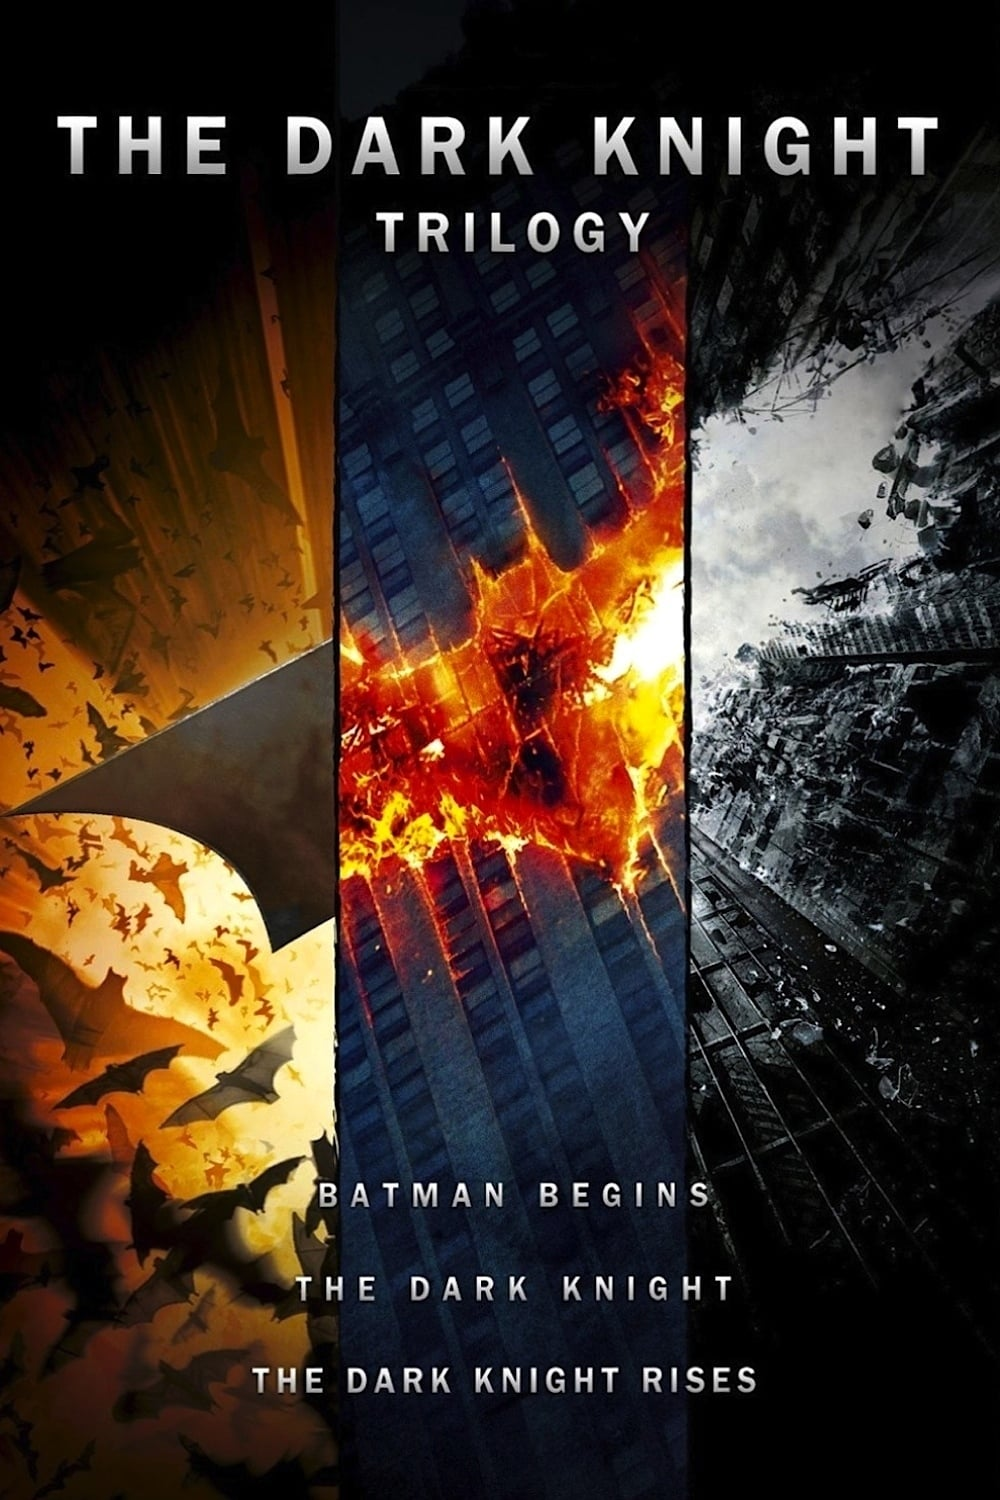 Dark Knight Falls Wallpaper All Movies From The Dark Knight Collection Saga Are On